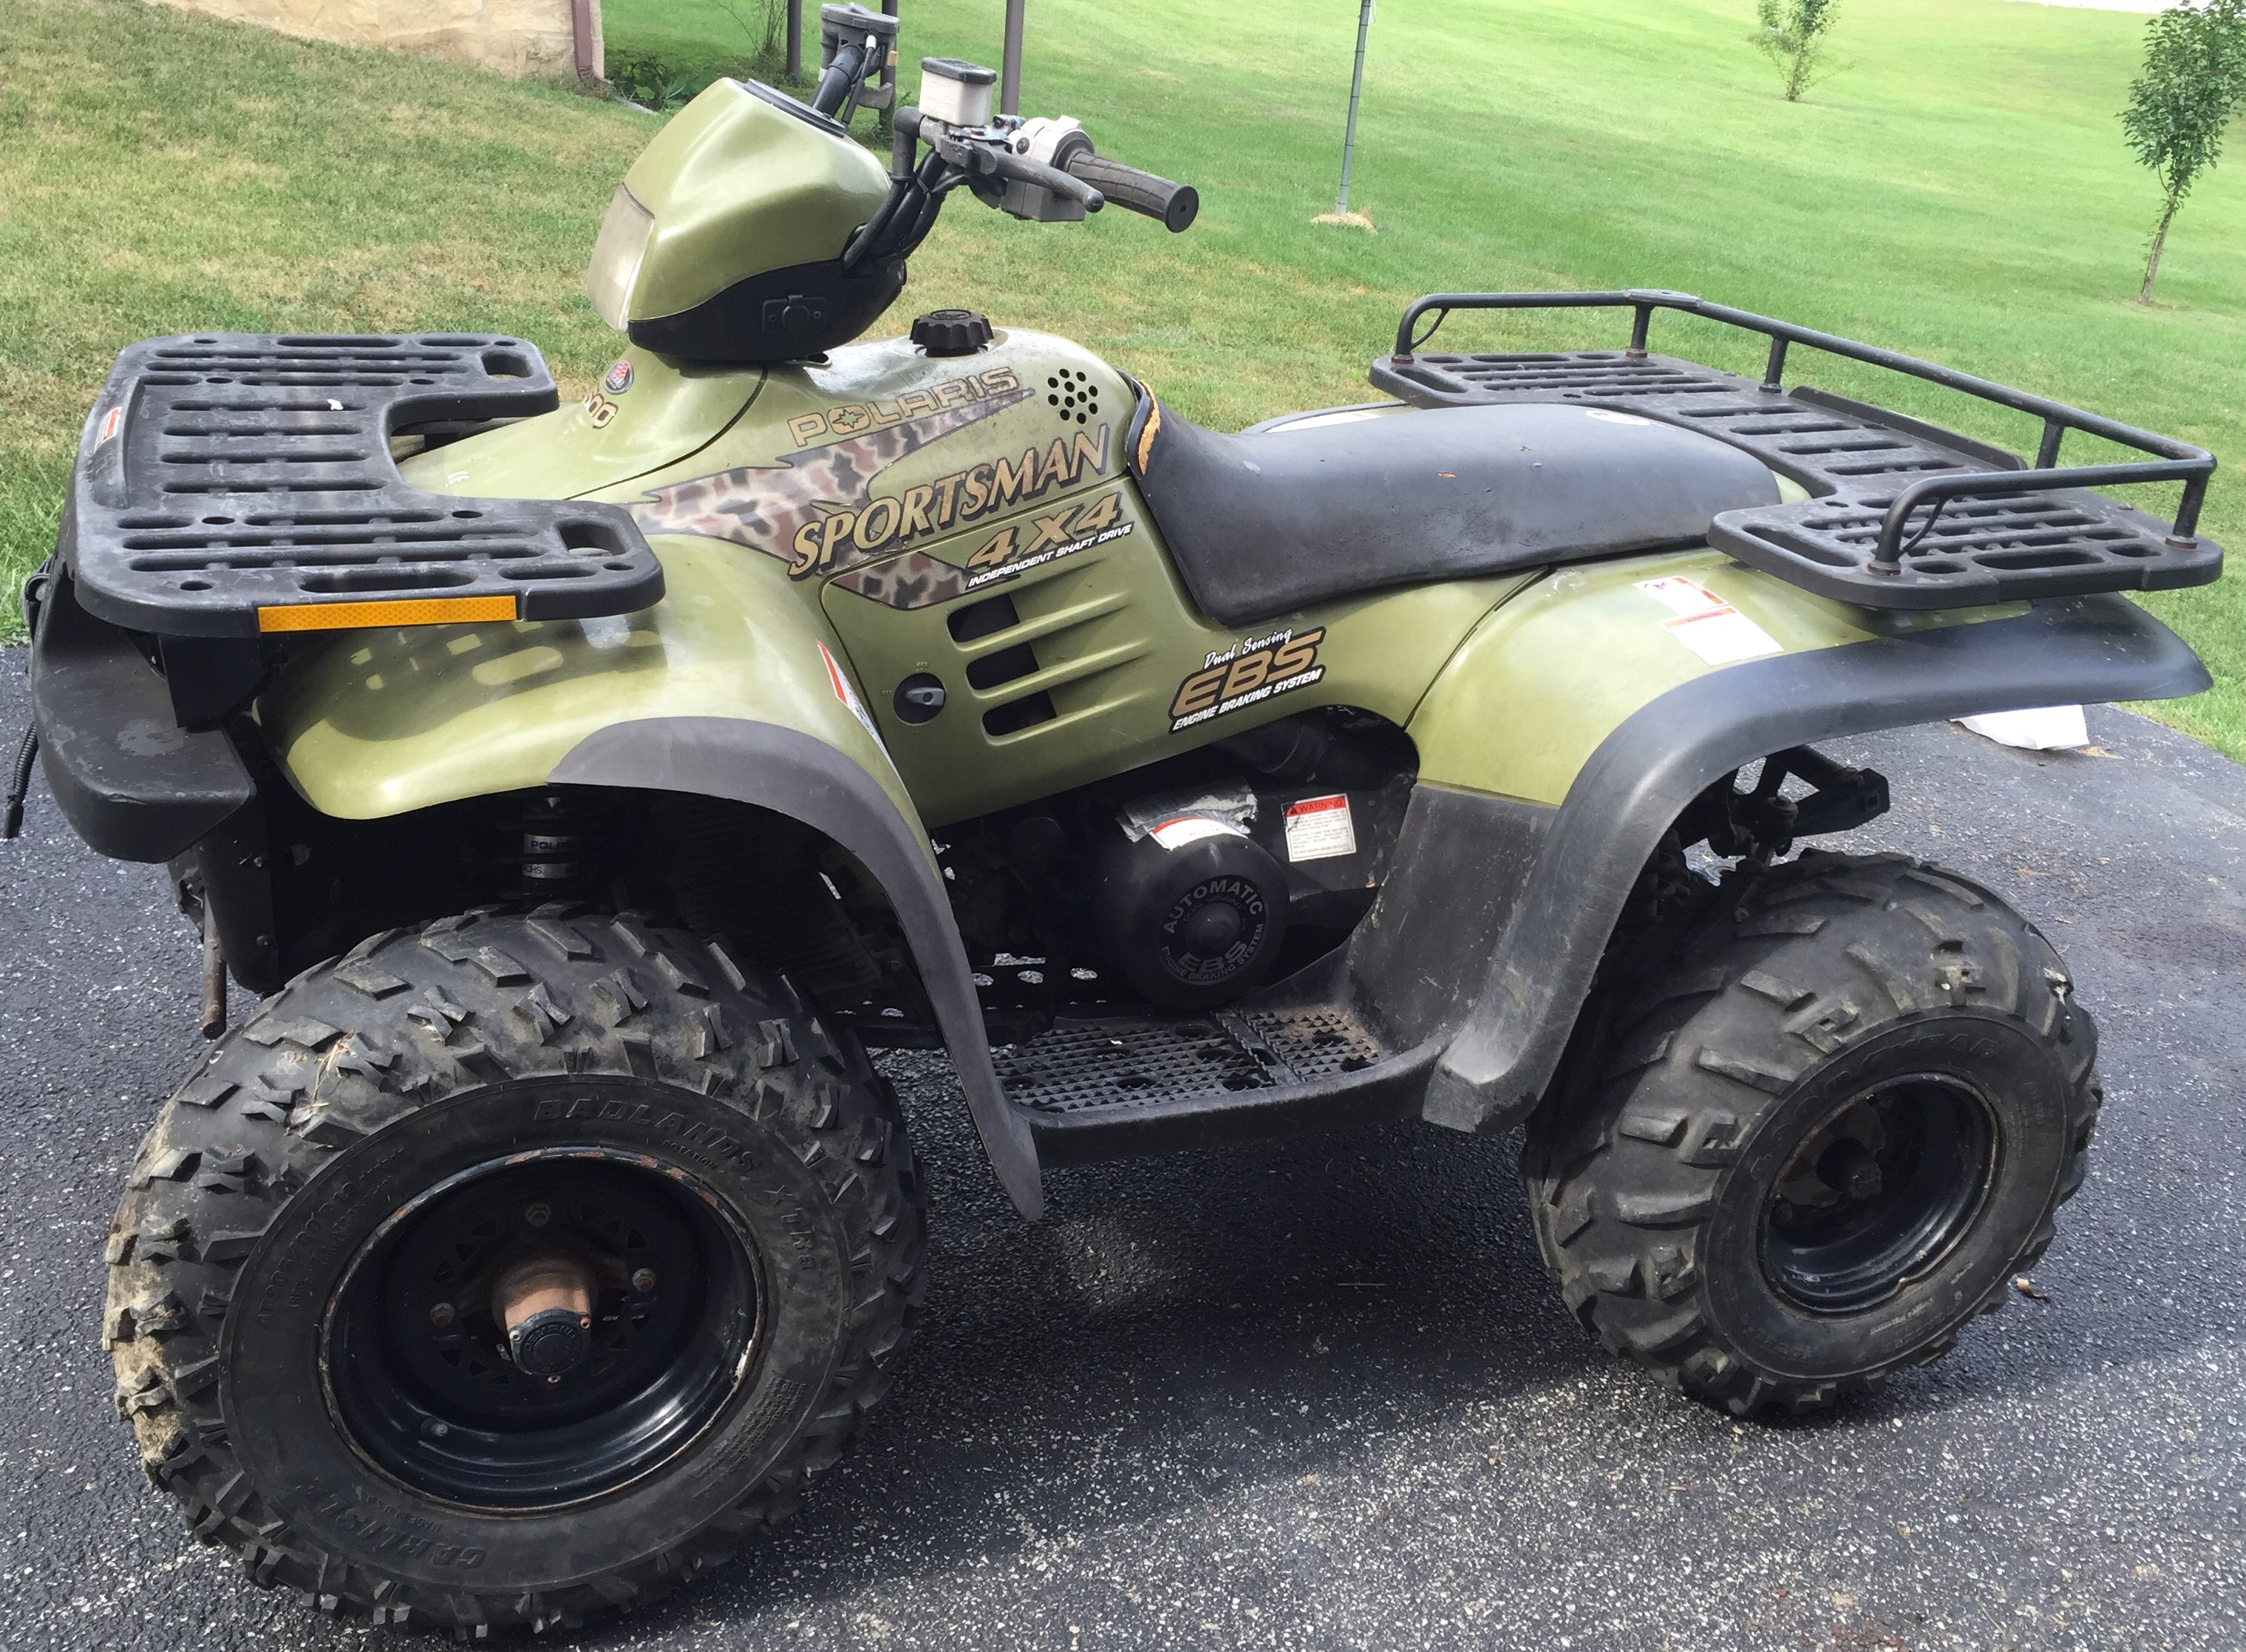 John Deere  mercial Zero Turn Mowers additionally Greensmaster Triflex 3300 04510 1 moreover ProductDetails also 2006 Polaris Sportsman 500 Ho Efi Browning Edition Used in addition EXmark Ultra Vac Bagger Parts. on toro commercial mowers for sale